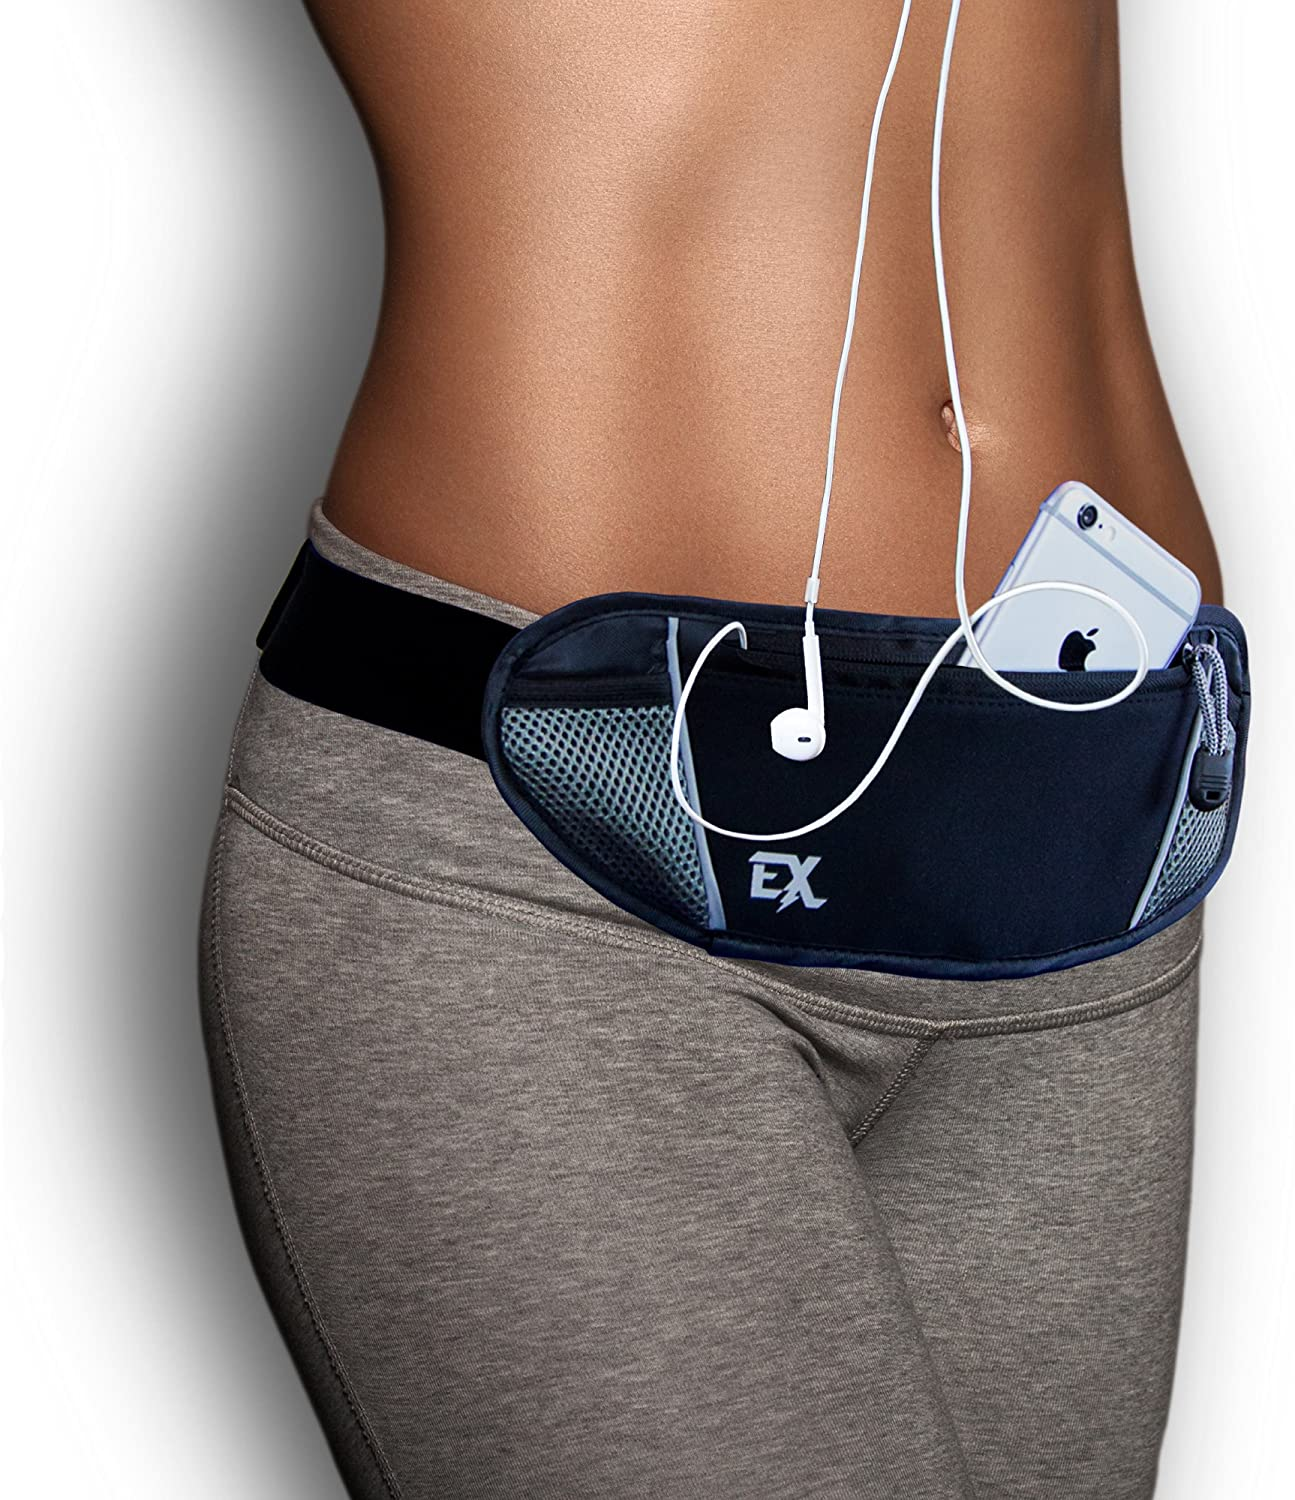 Extreme Gear Running Belt for Phone – Fanny Pack for Running Comfortably Carry Your iPhone 6 7 or Plus with case